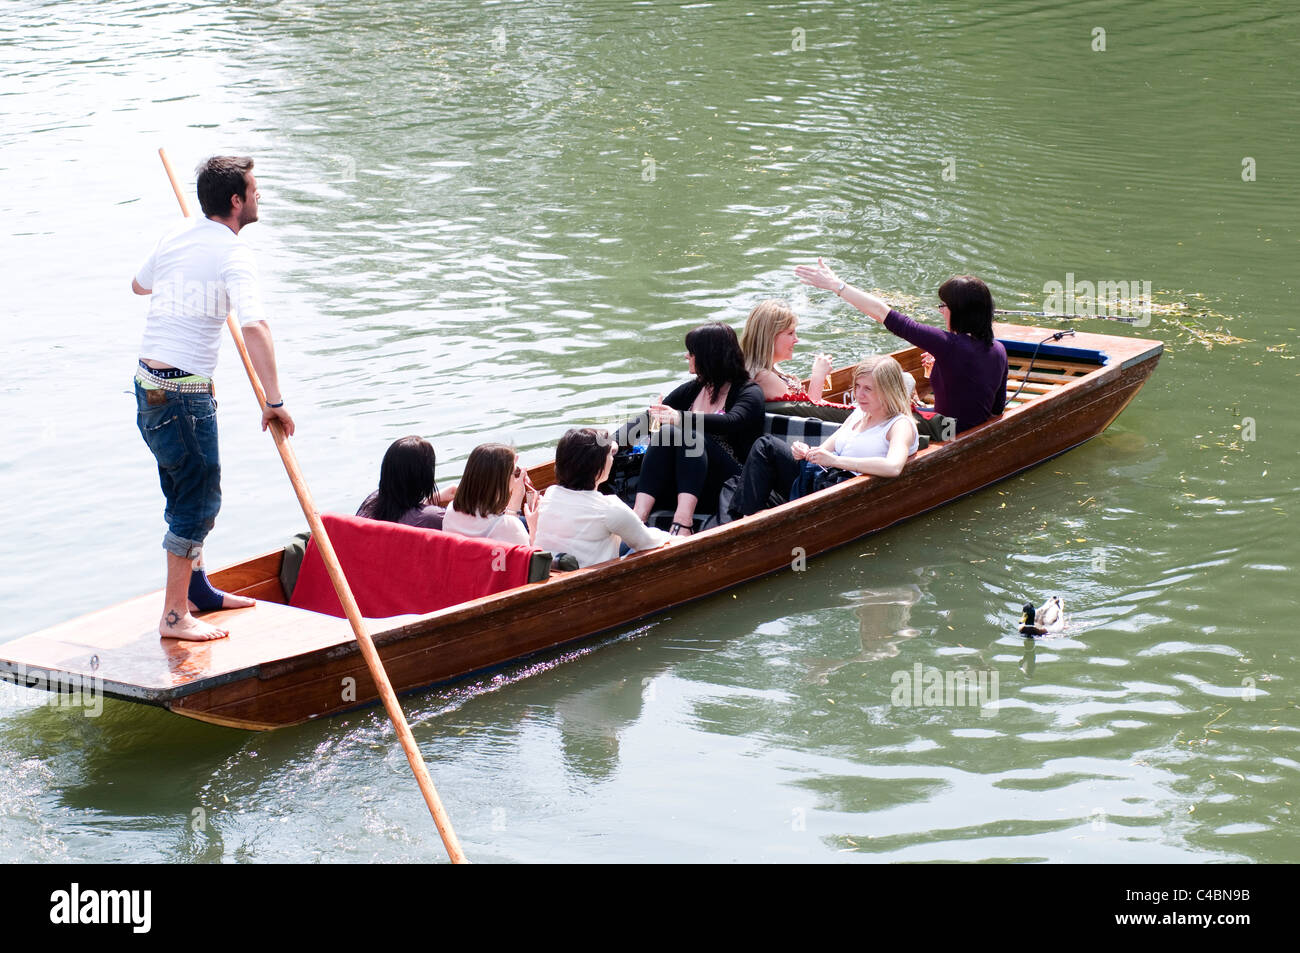 Punt Boat Stock Photos & Punt Boat Stock Images - Alamy